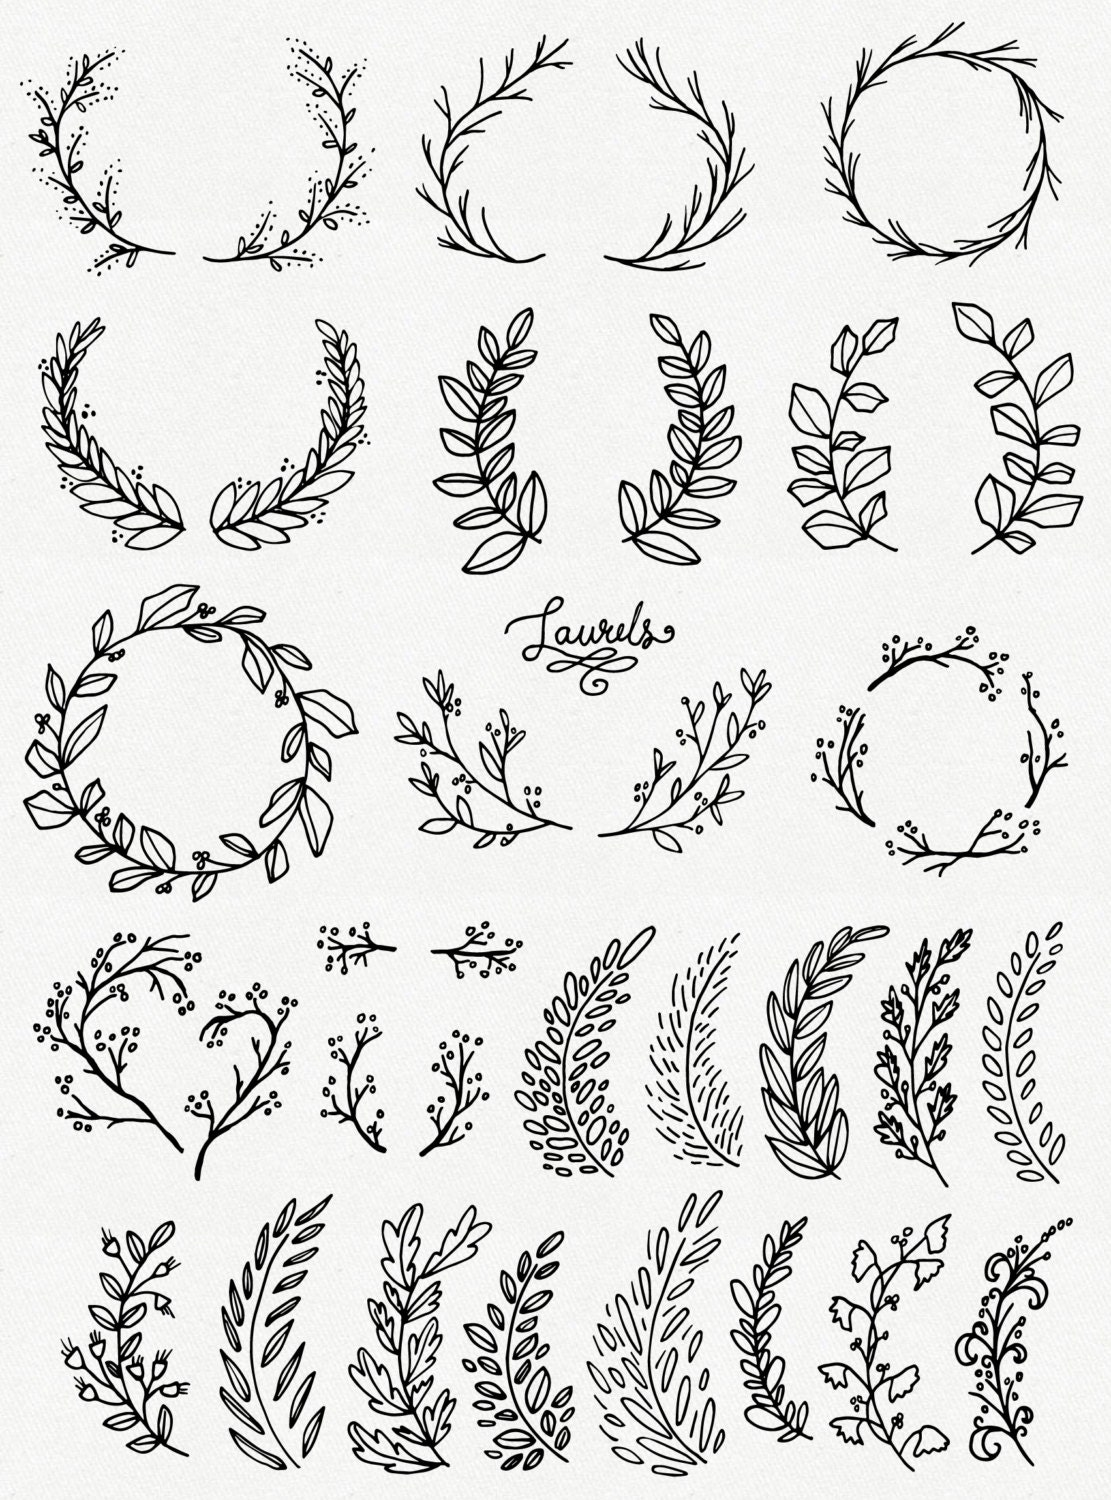 CLIP ART: Whimsical Laurels & Wreaths // Photoshop Brushes